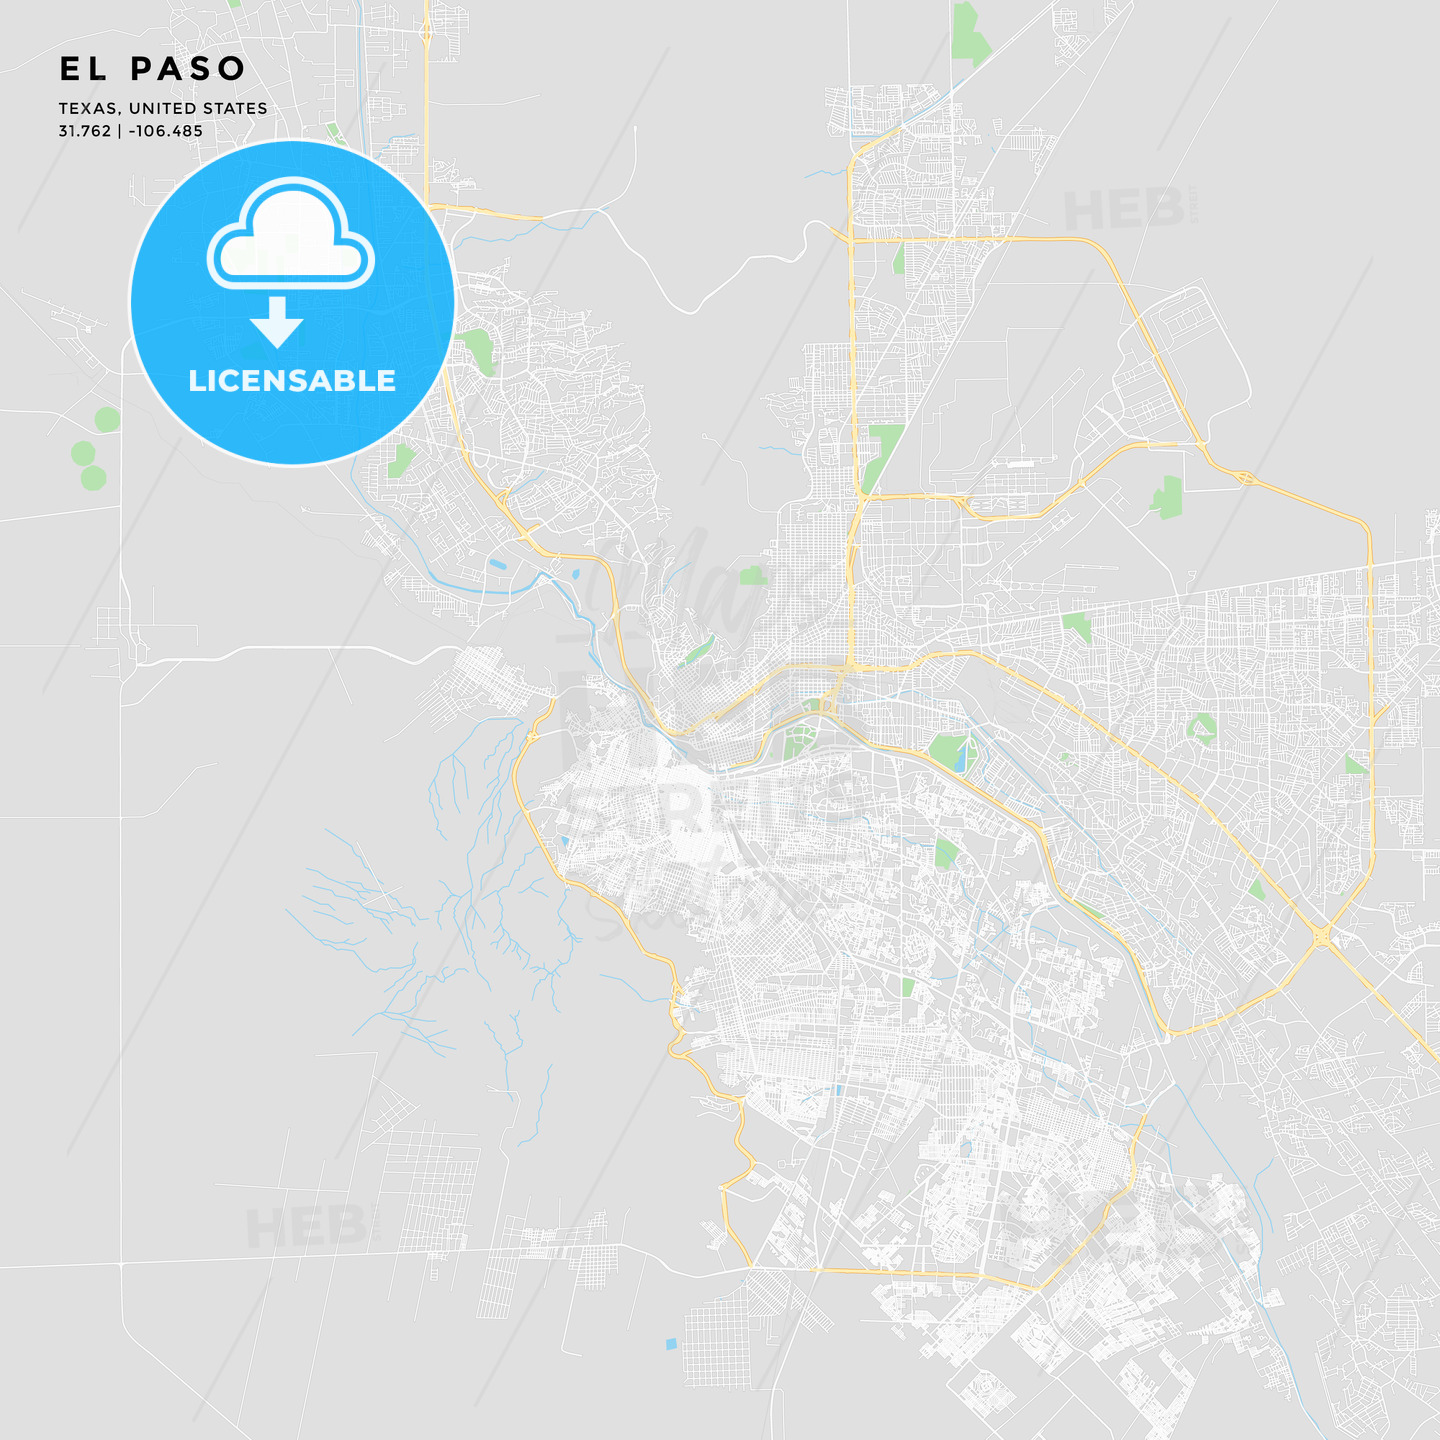 Printable street map of El Paso, Texas